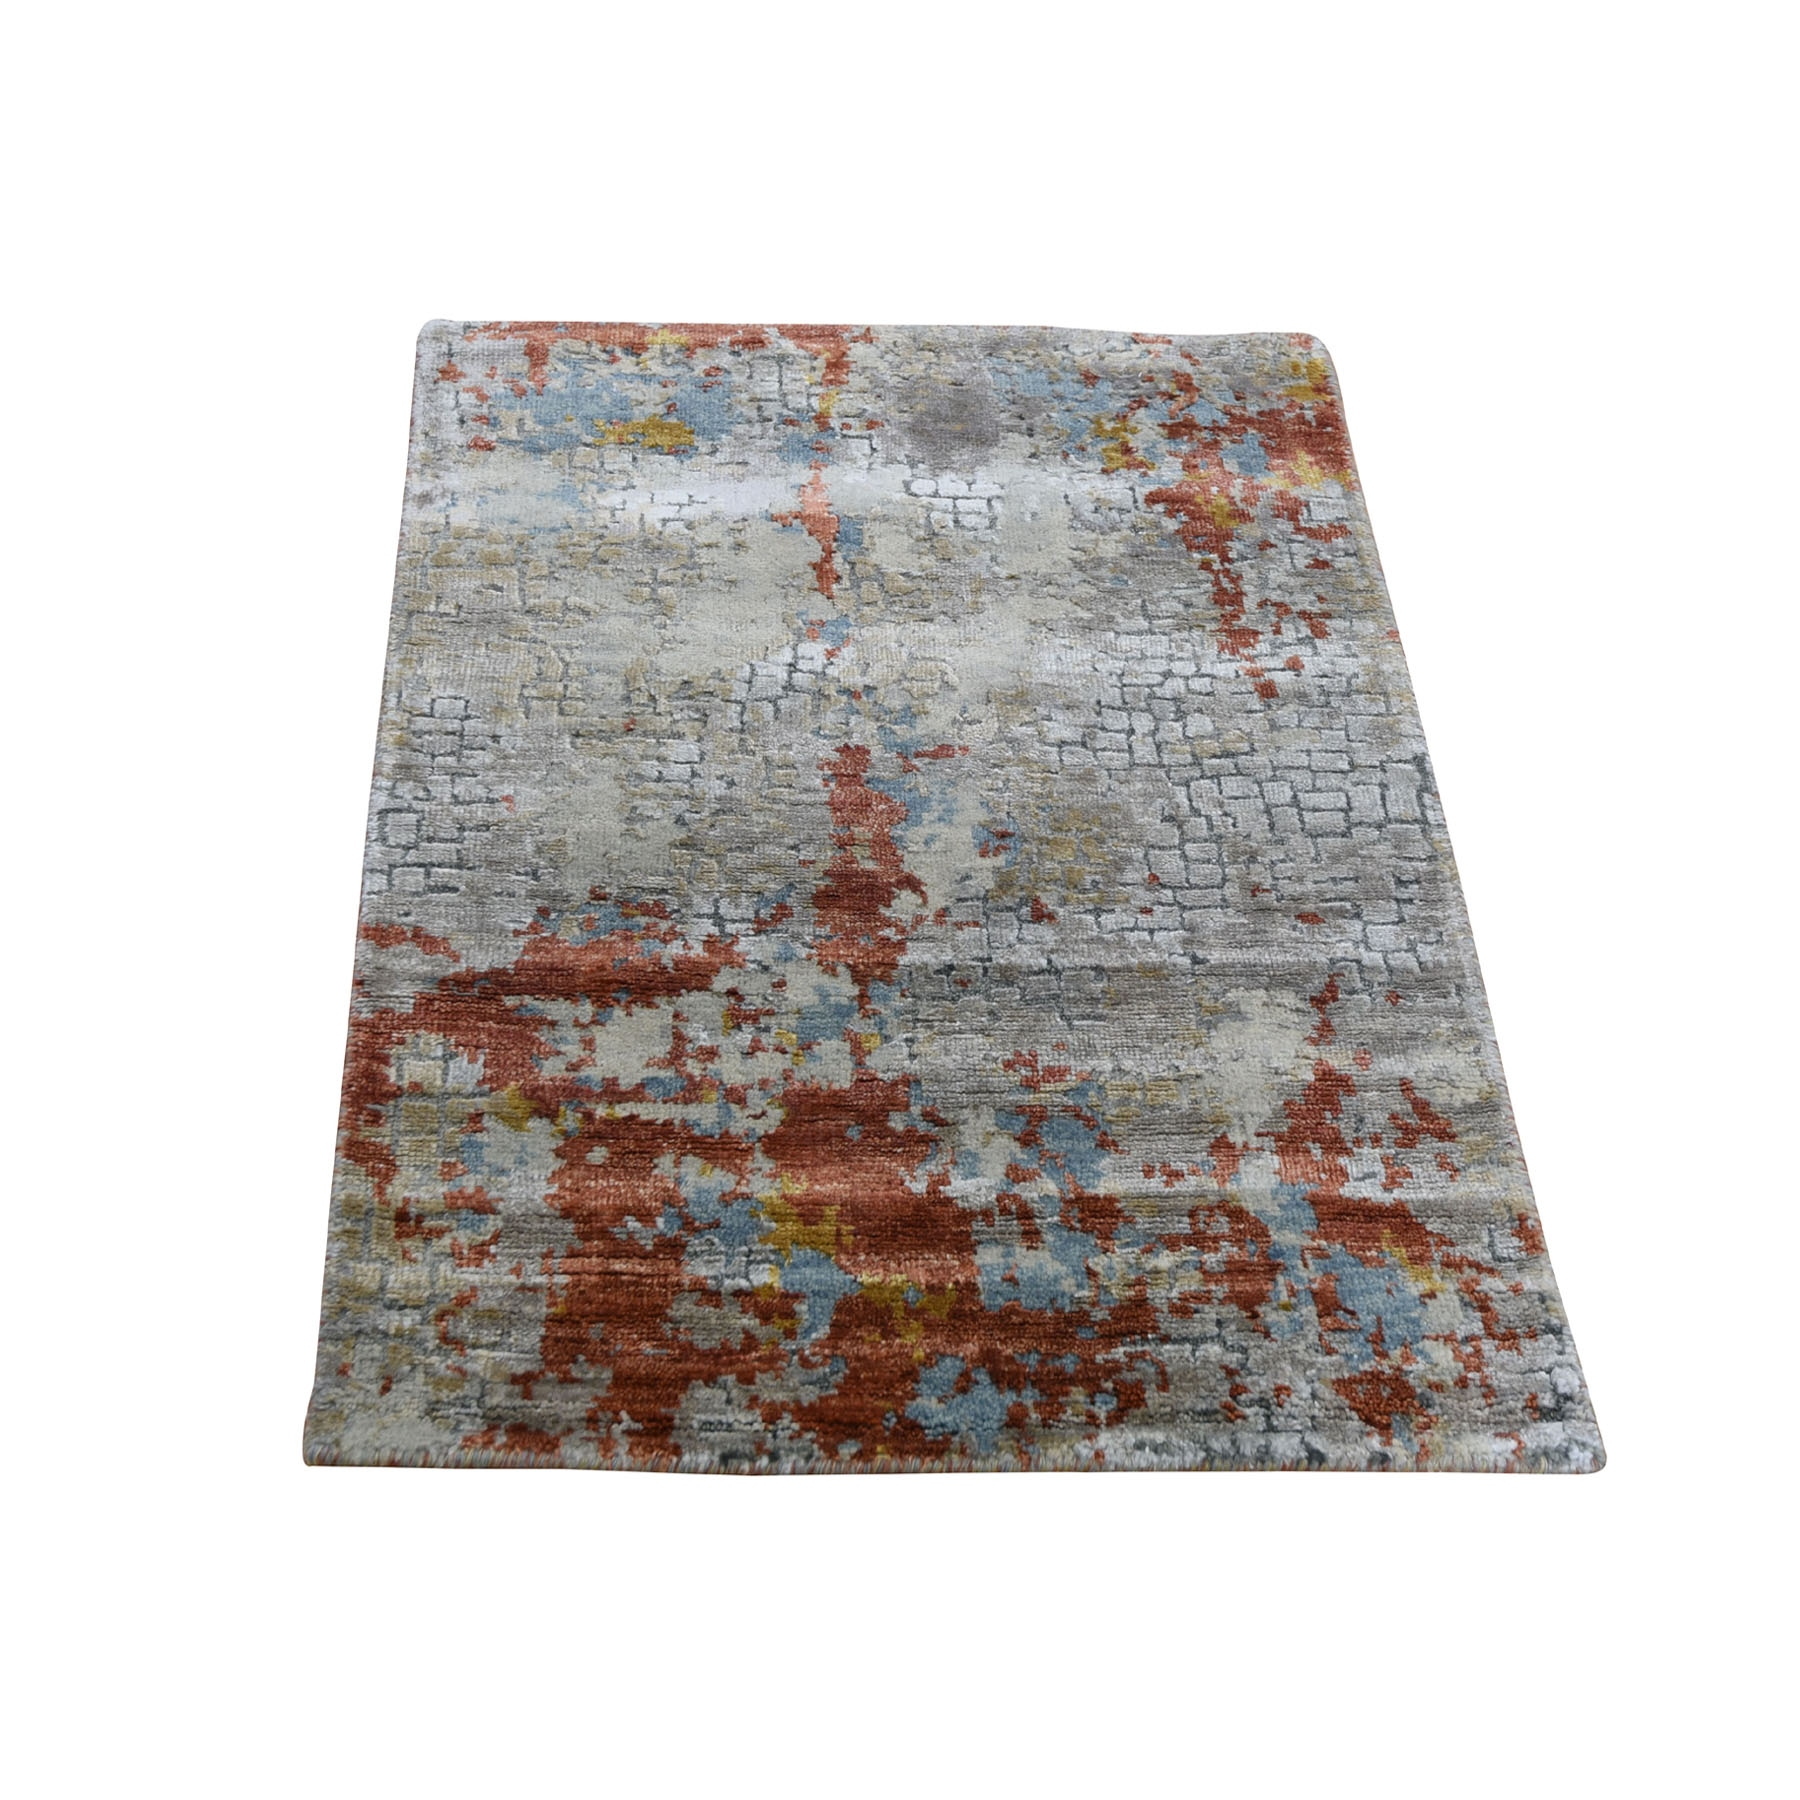 2-x3- Wool And Silk Abstract With Fire Mosaic Design Hand-Knotted Oriental Rug